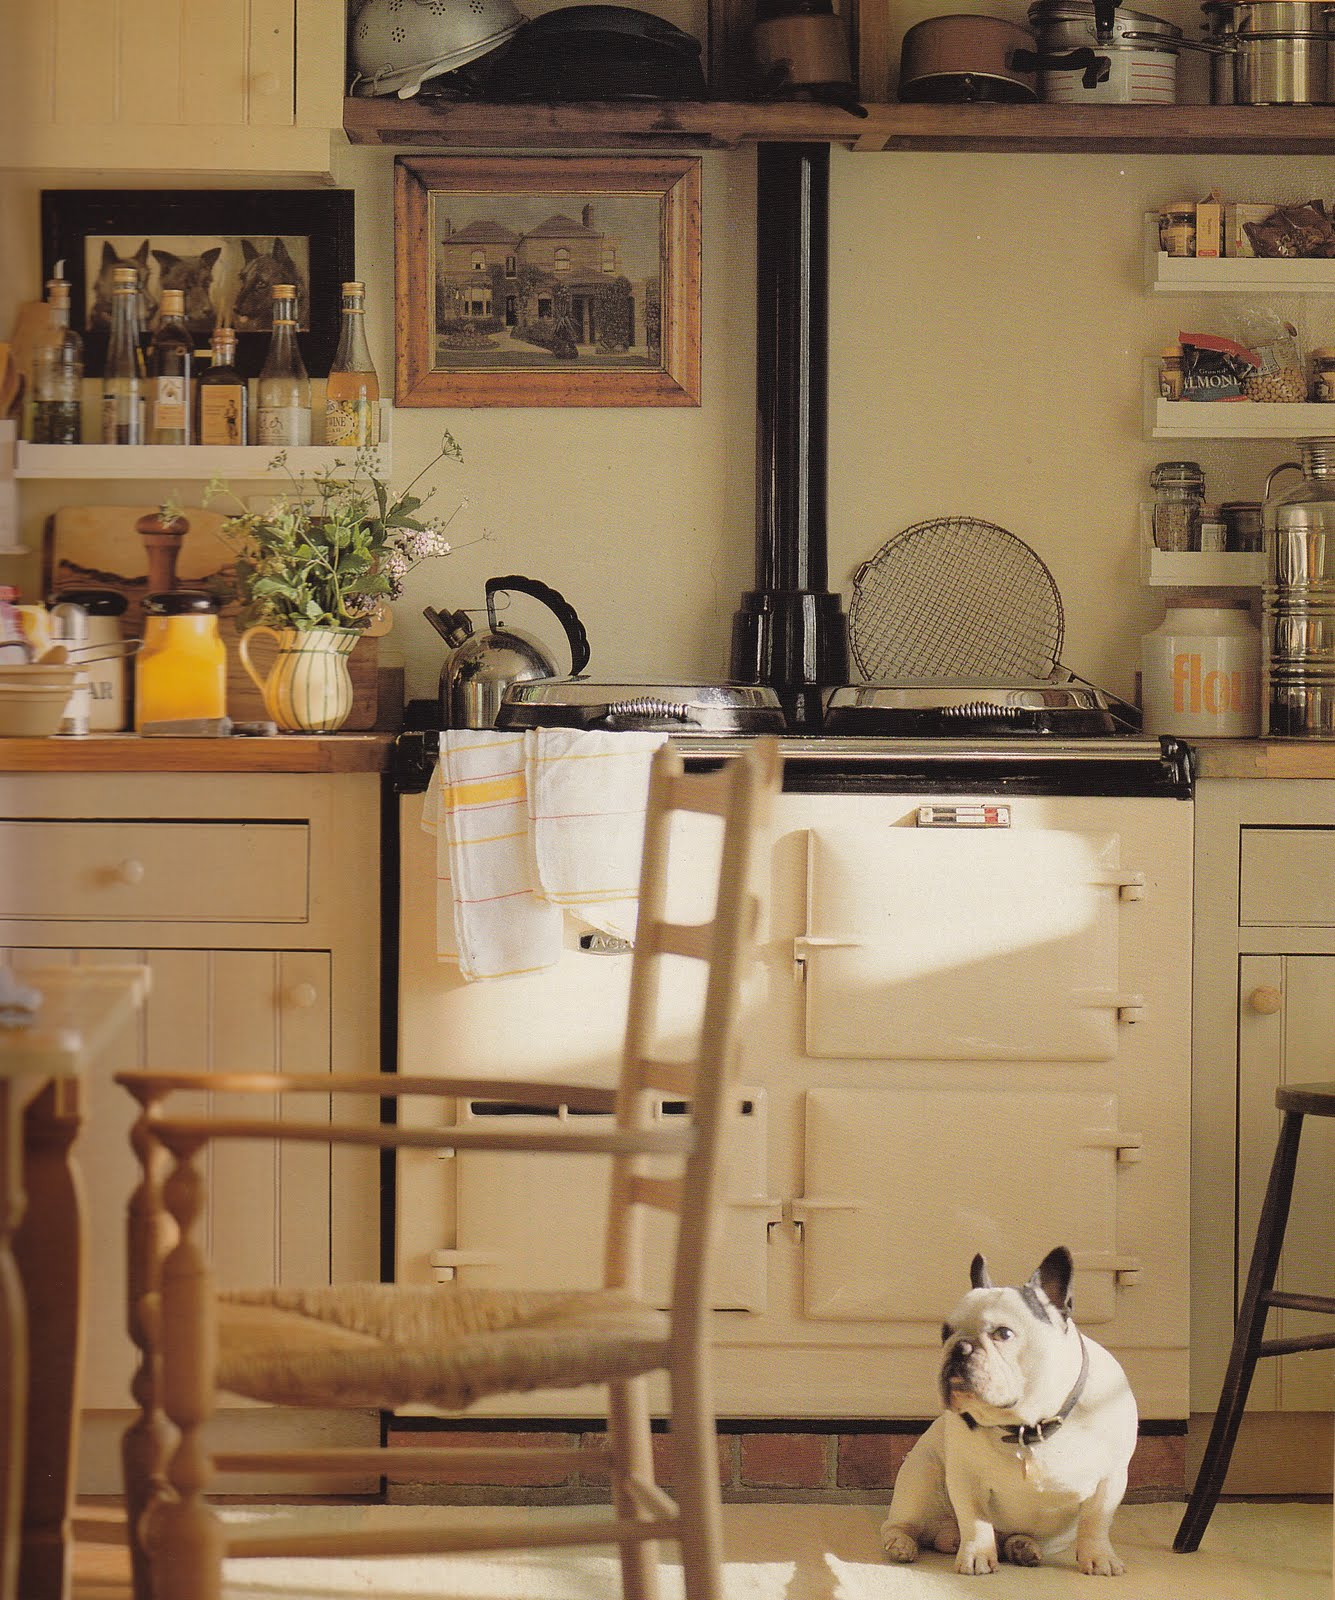 English Cottage Kitchen Designs: Rosemarsh Knits: English Cottages And A French Bulldog